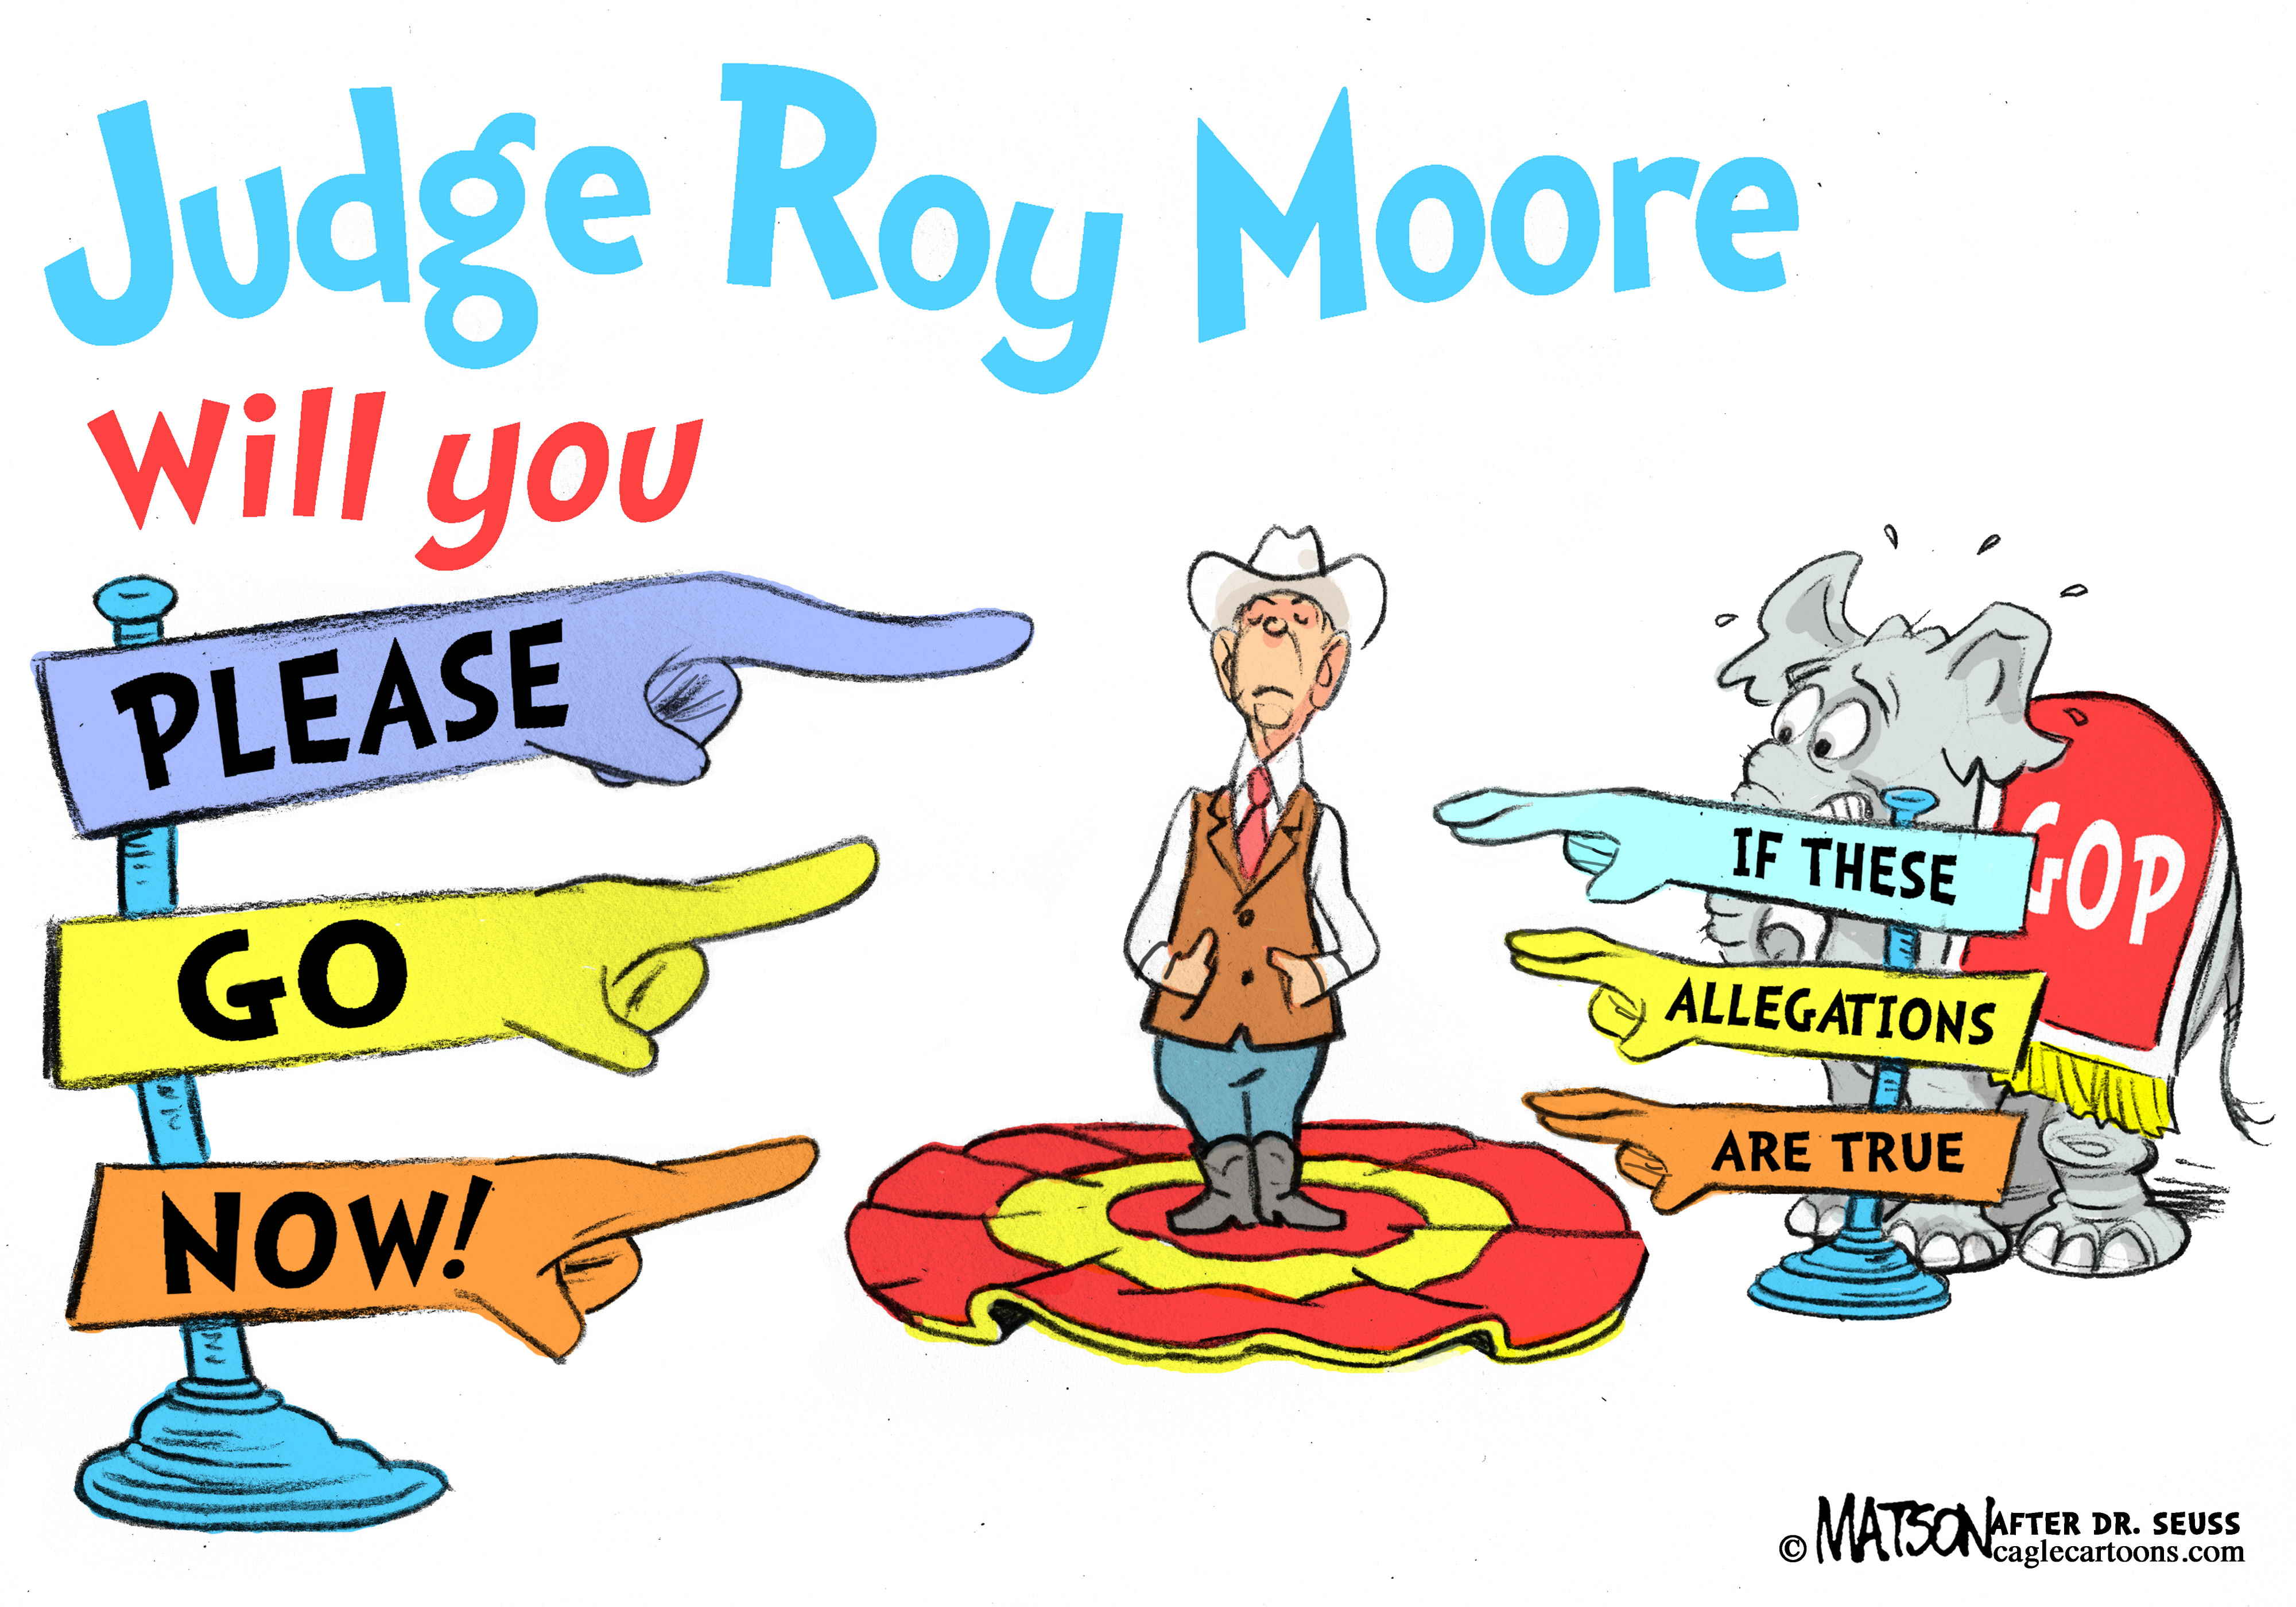 roy-moore-cartoon-matson2